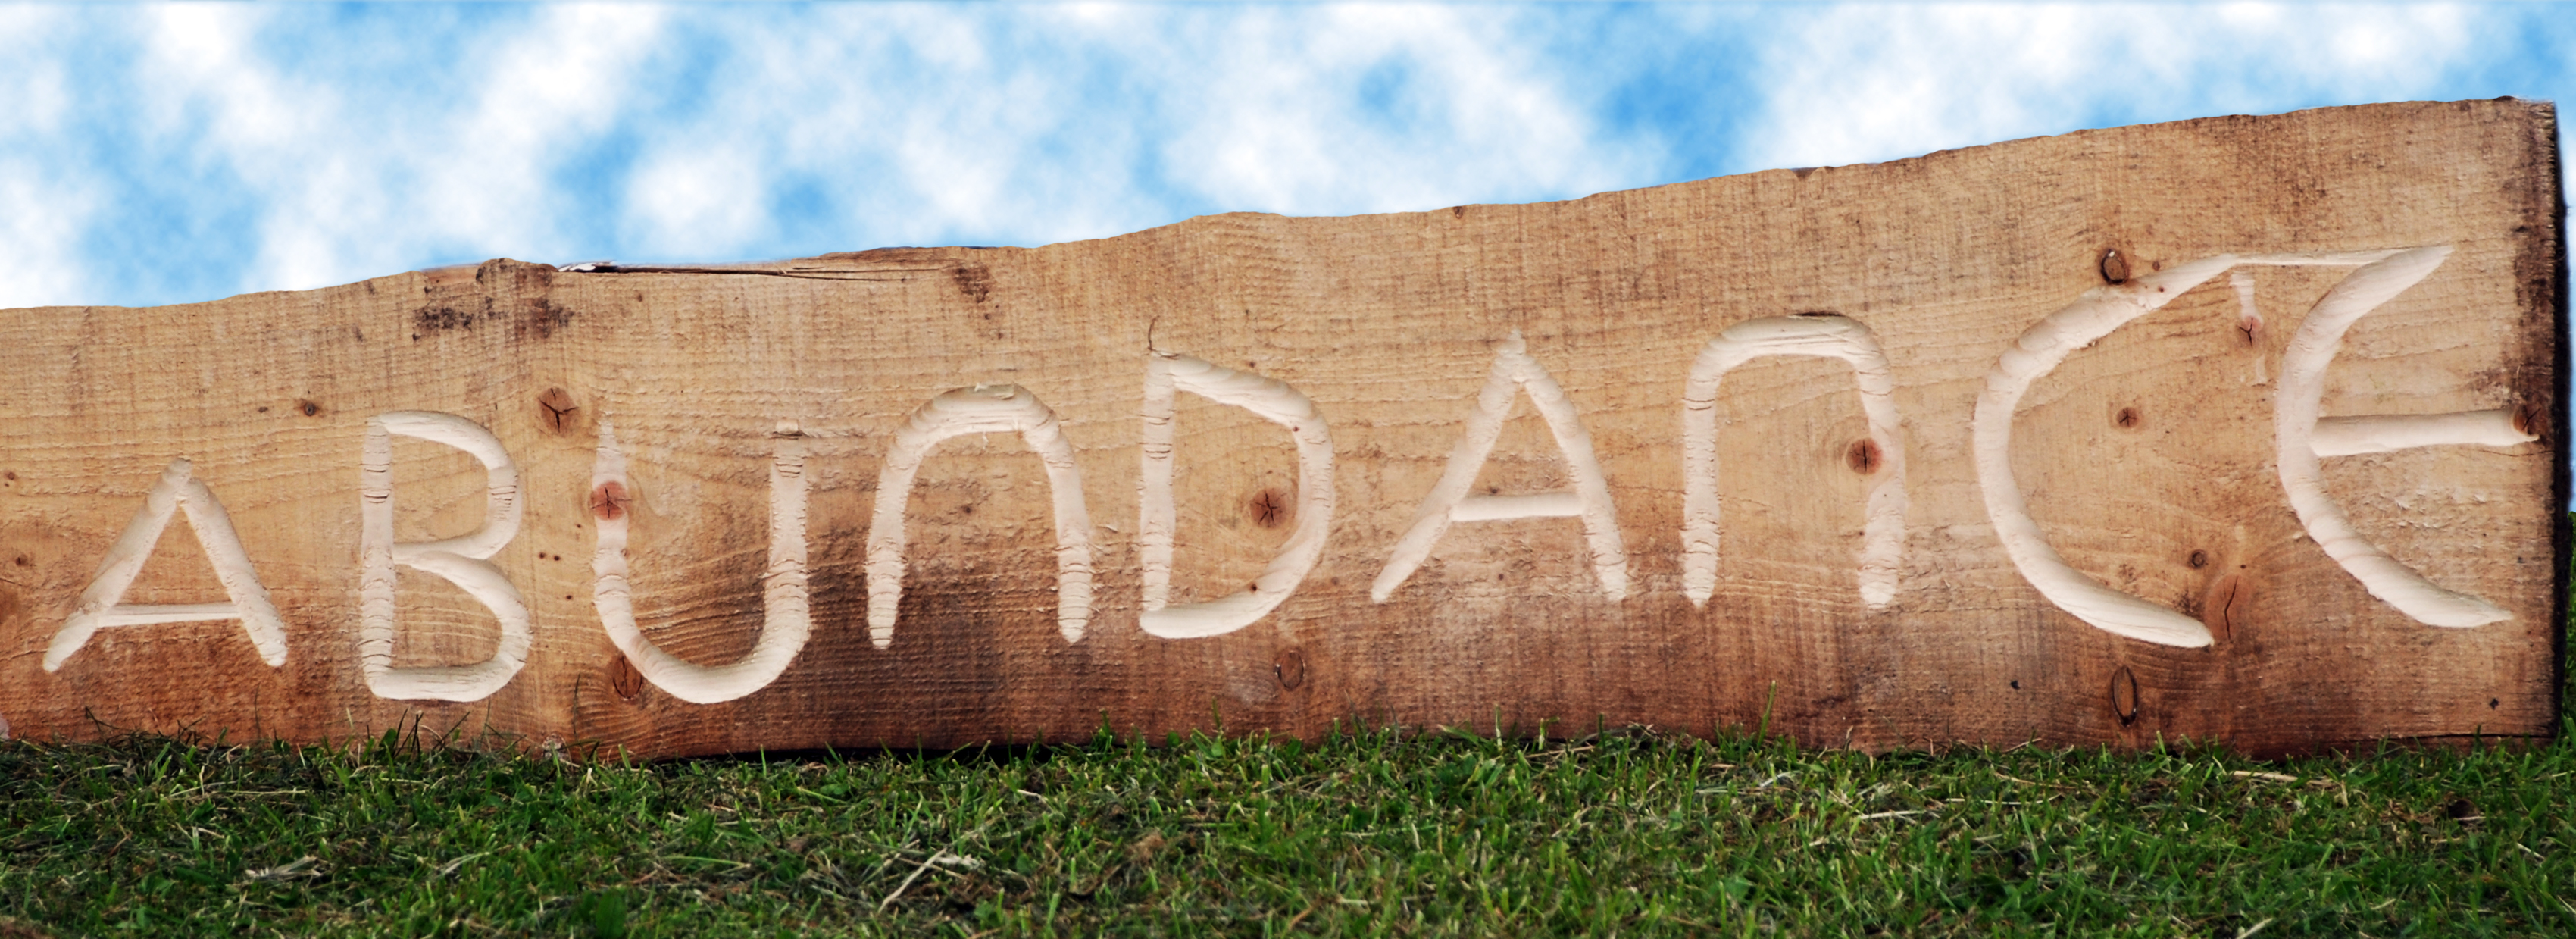 The word abundance carved in a log of wood, outdoors on grass and under a cloudy sky